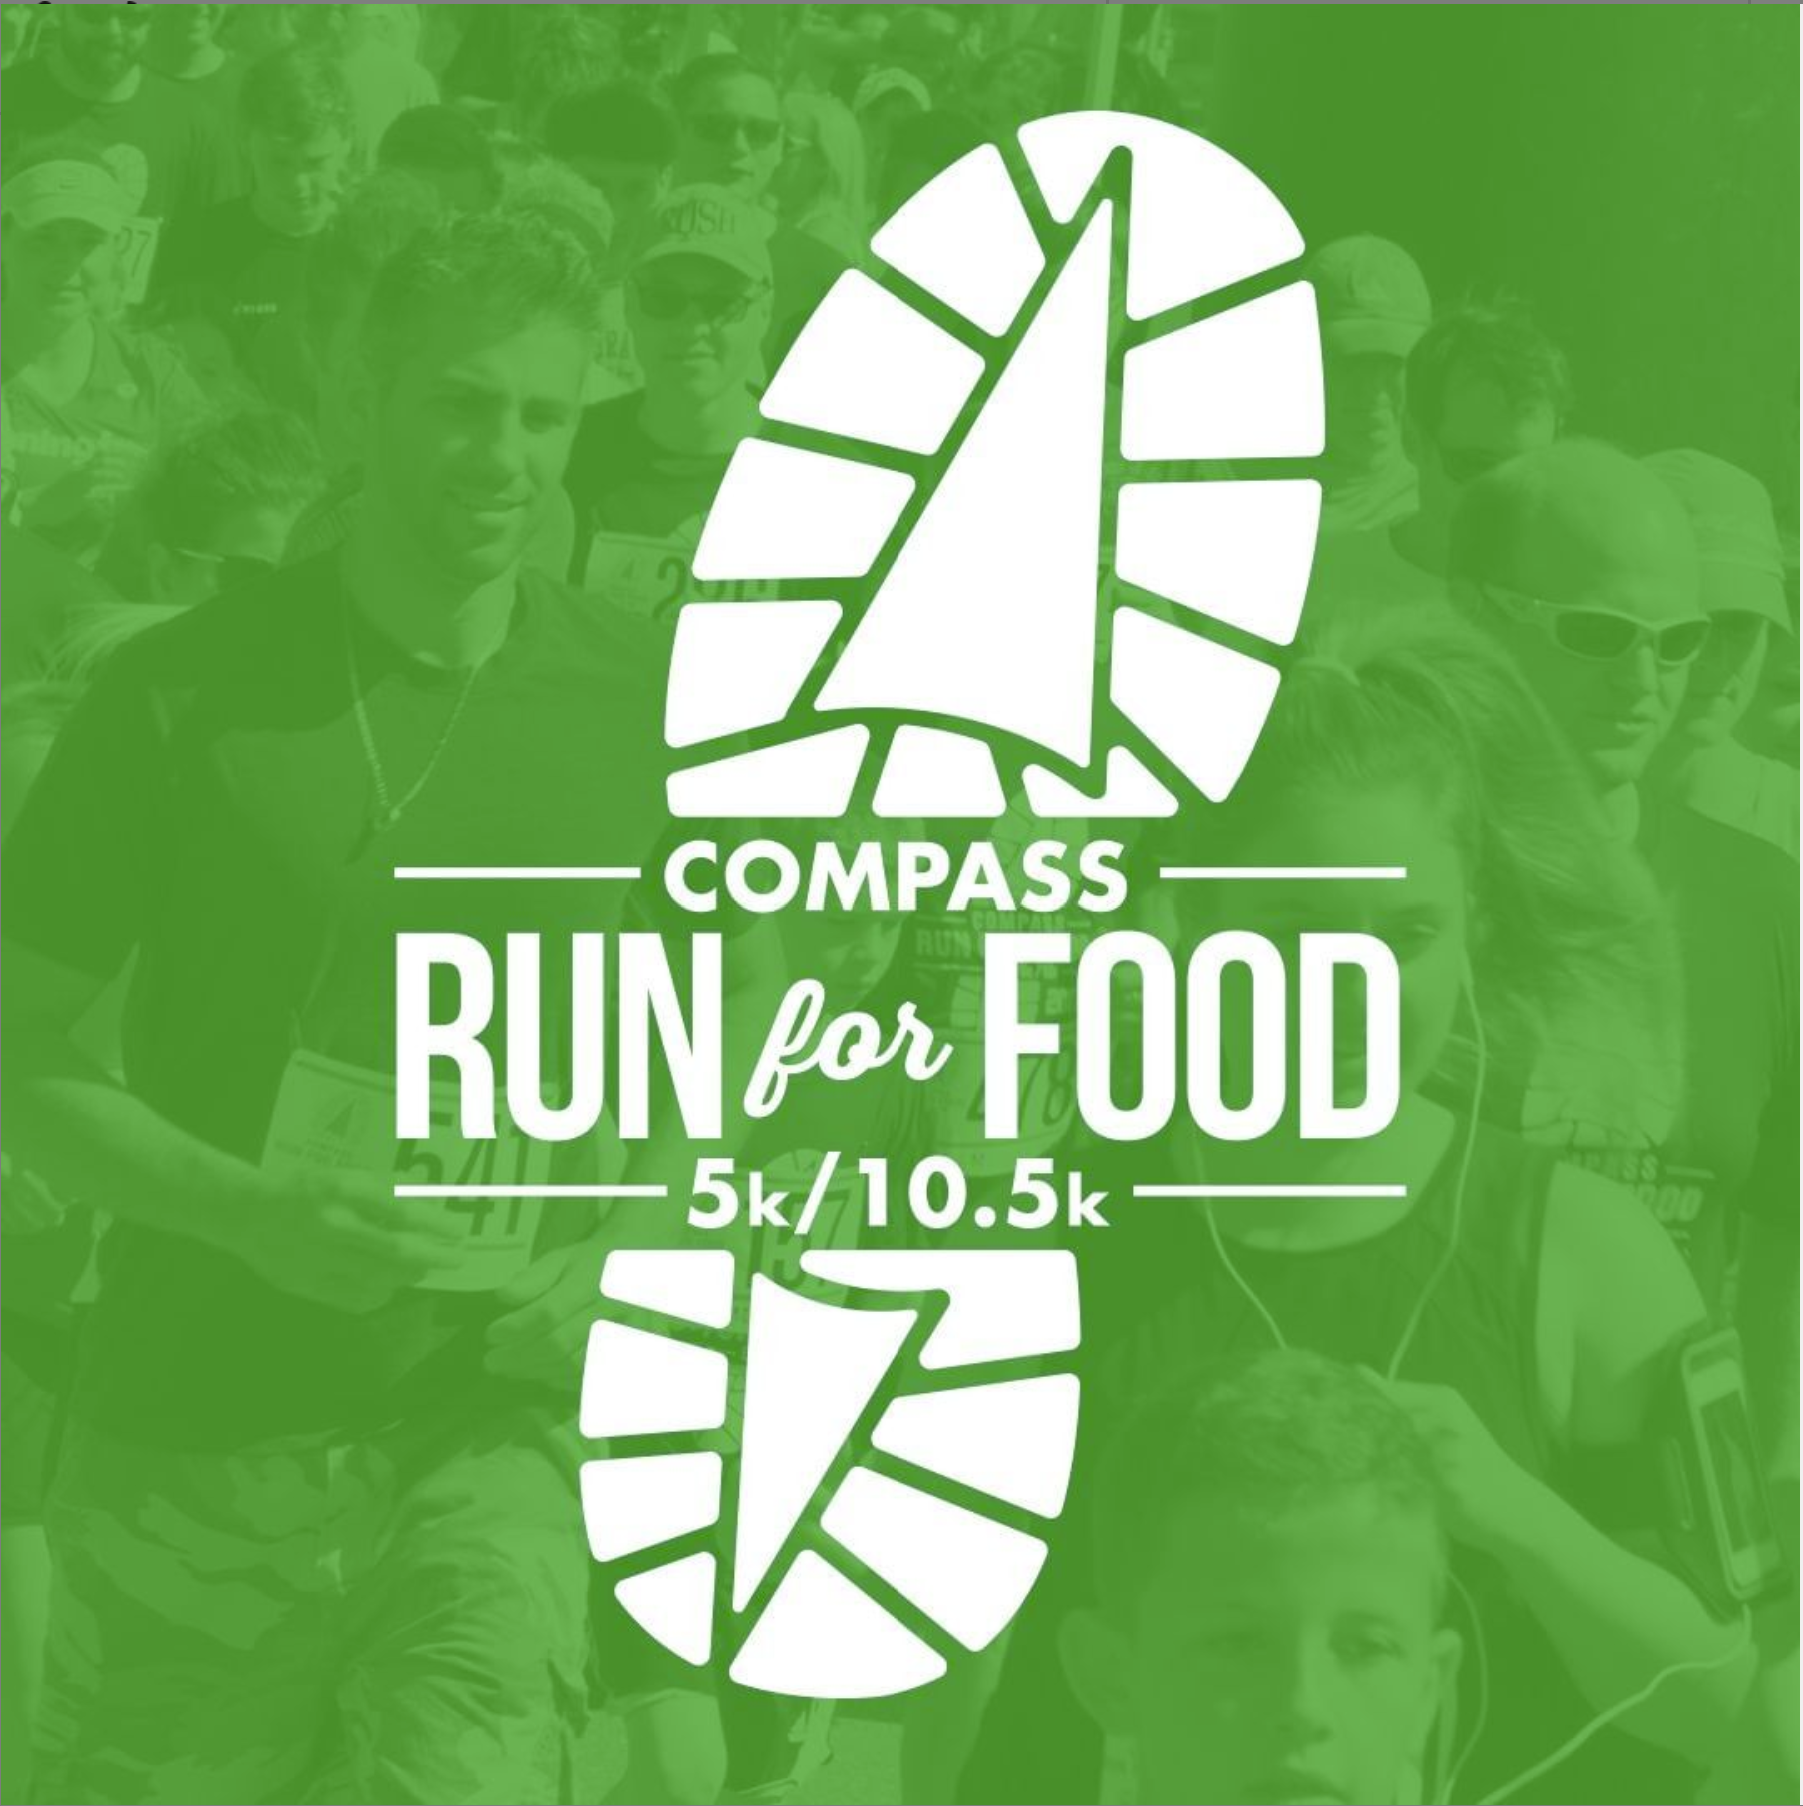 Compass Run For Food